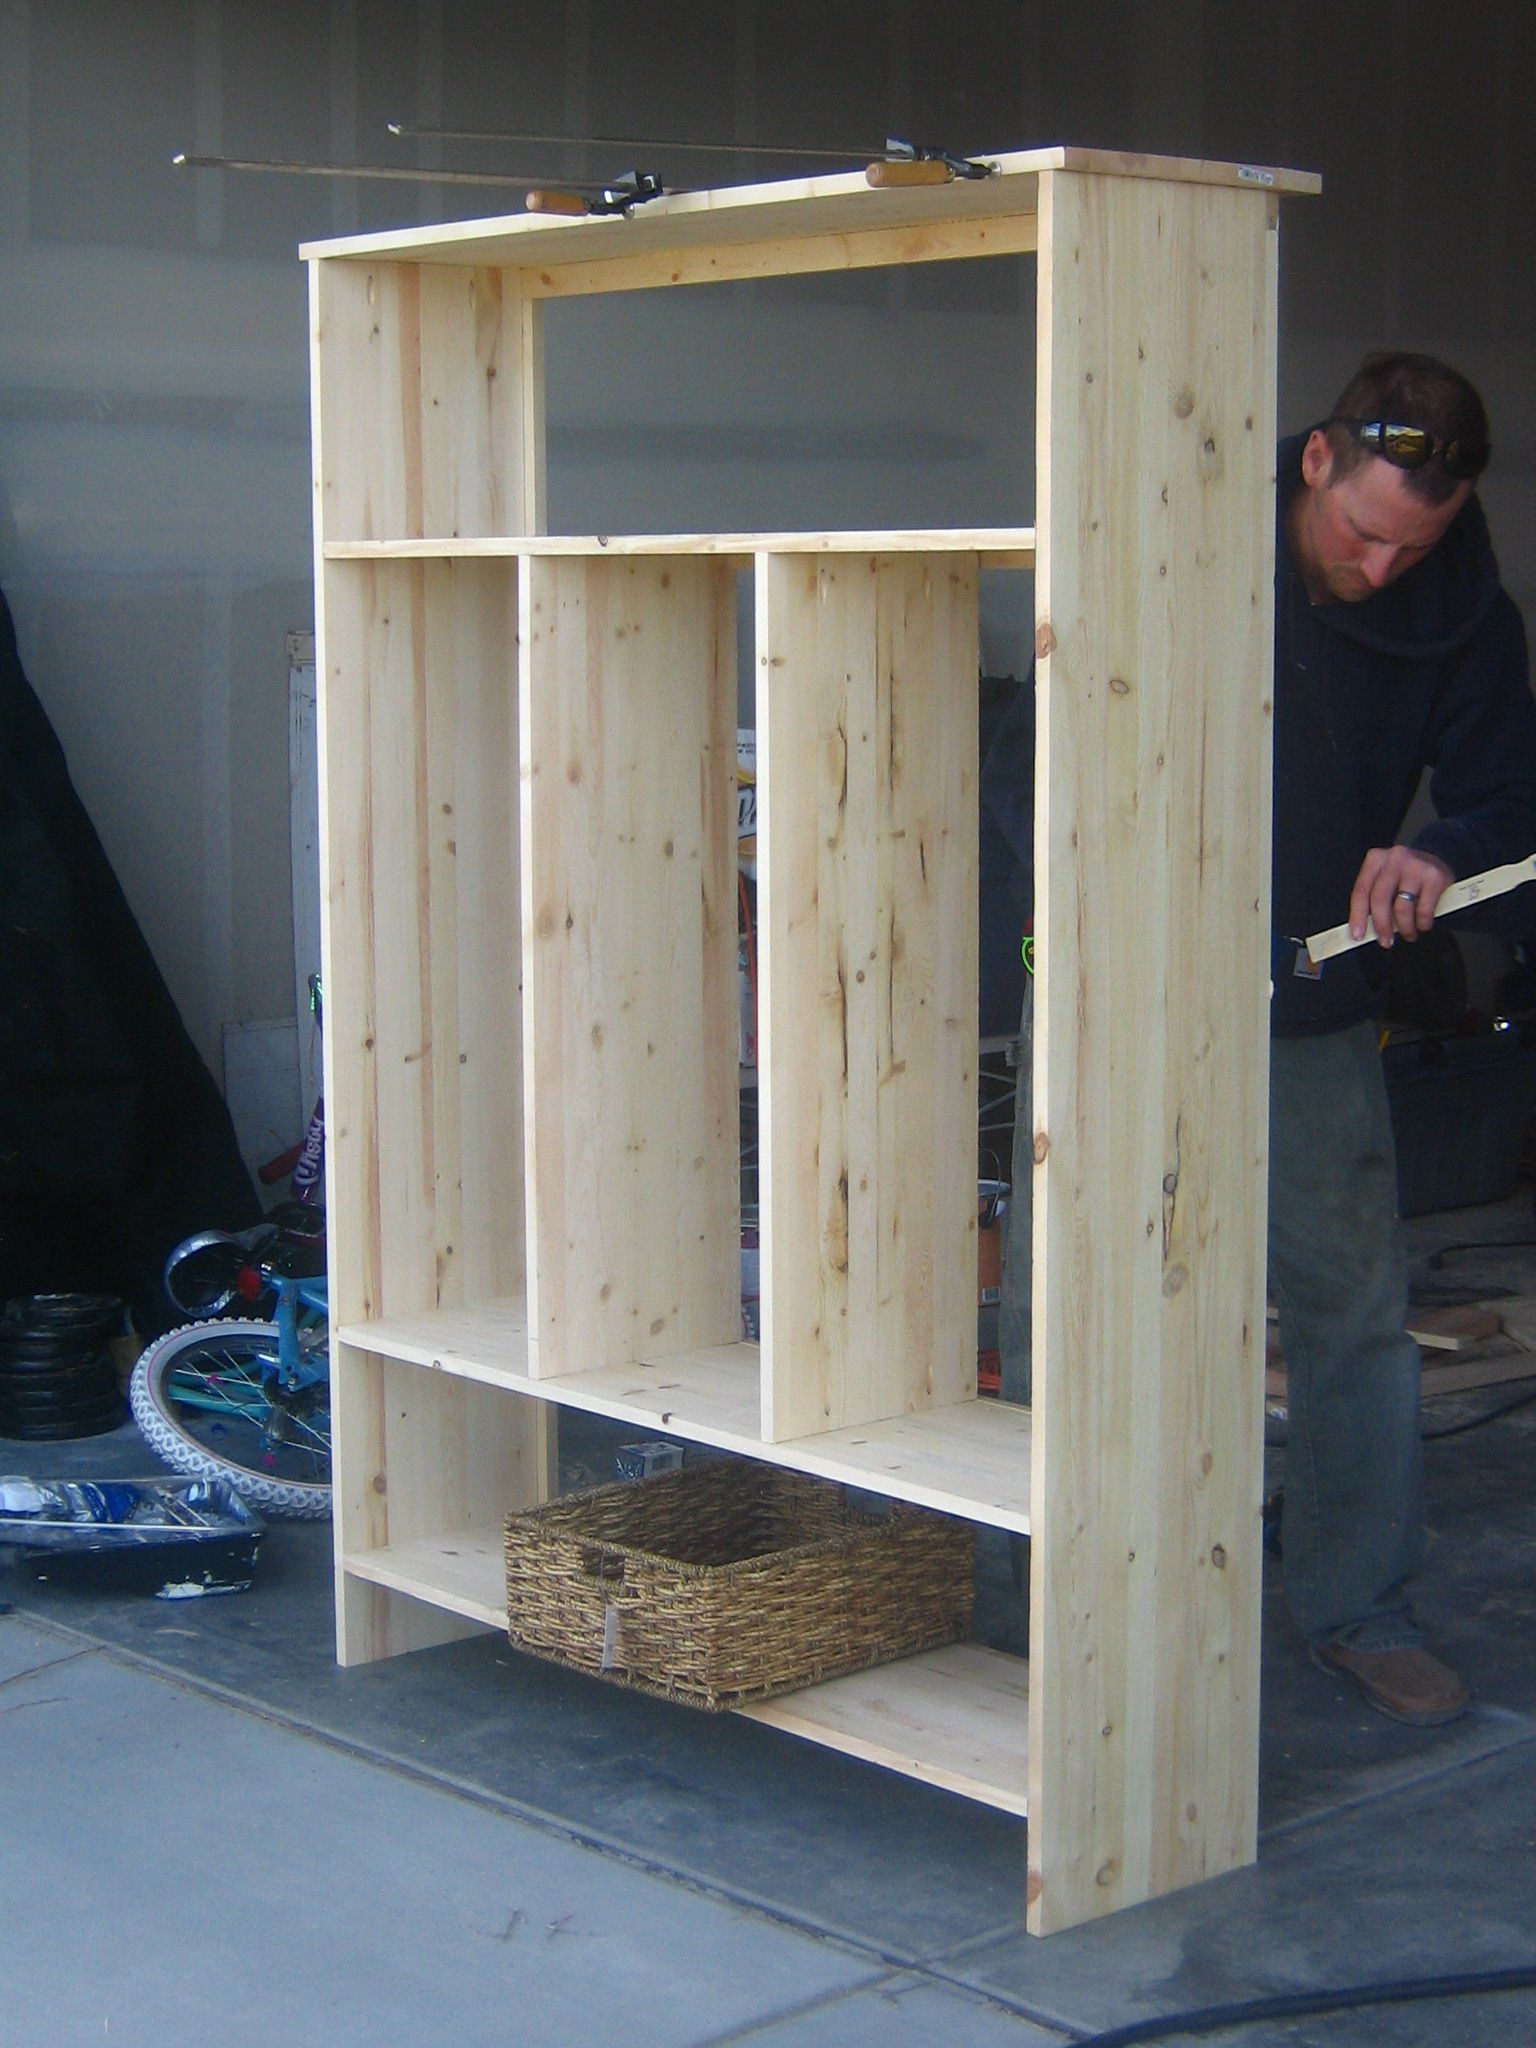 Make Your Own Mudroom Lockers Wooden Lockers Mudroom Lockers Wood Lockers